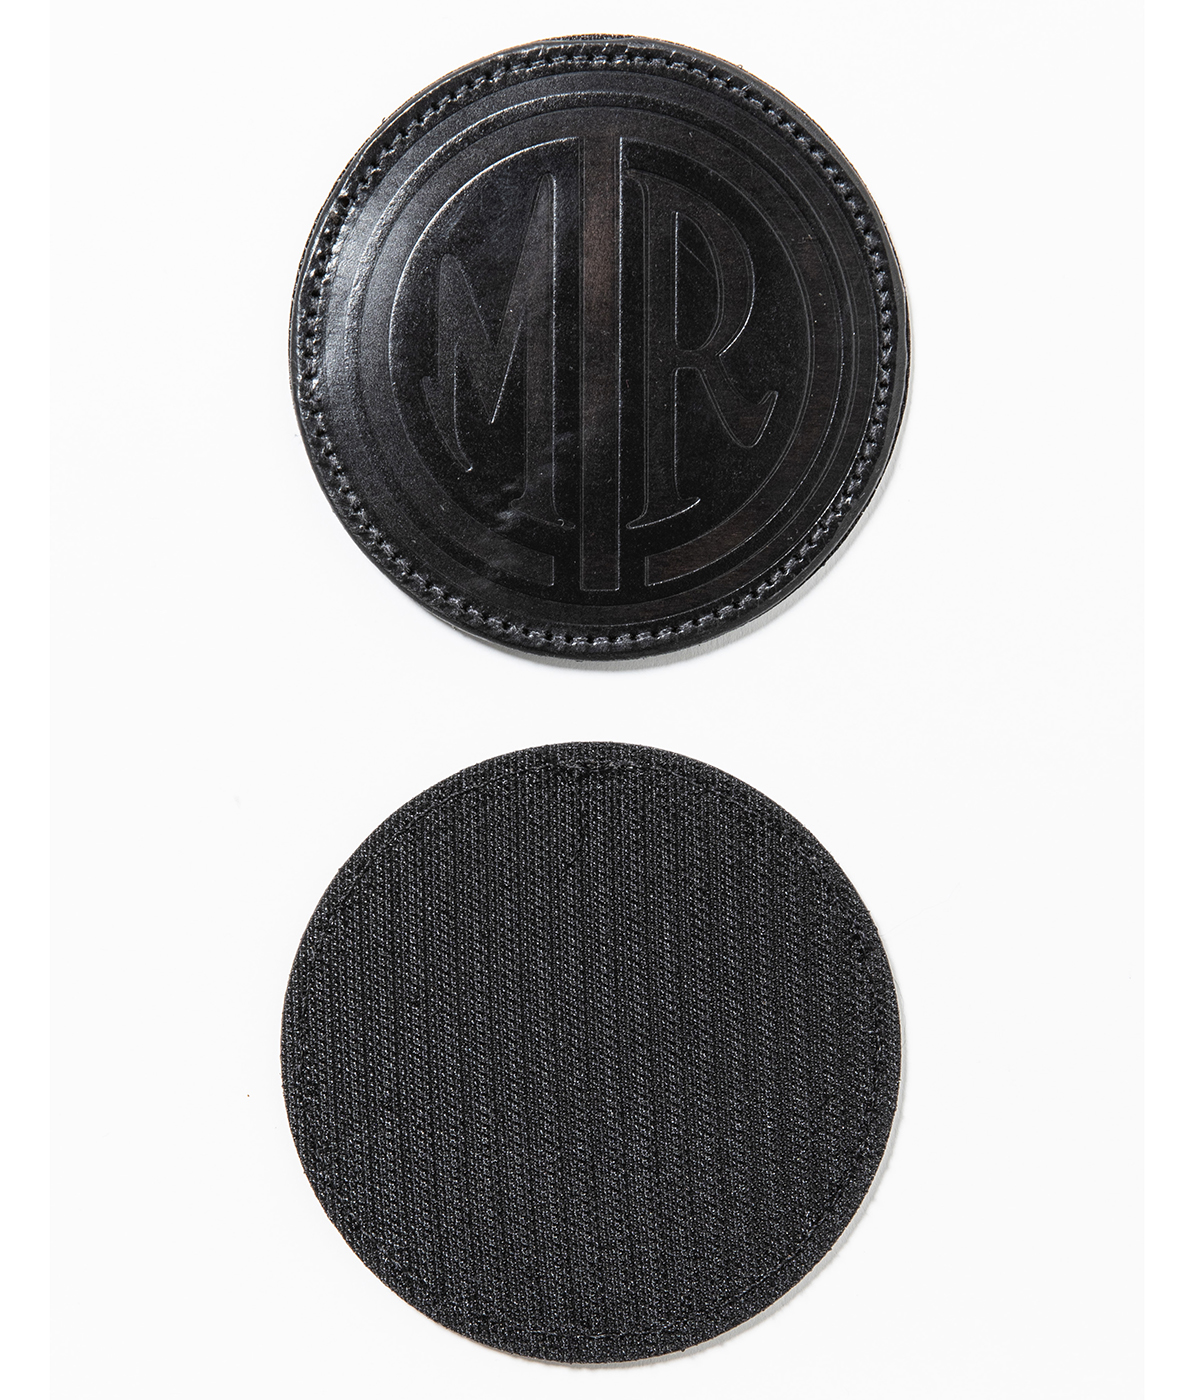 Mout Leather Patch